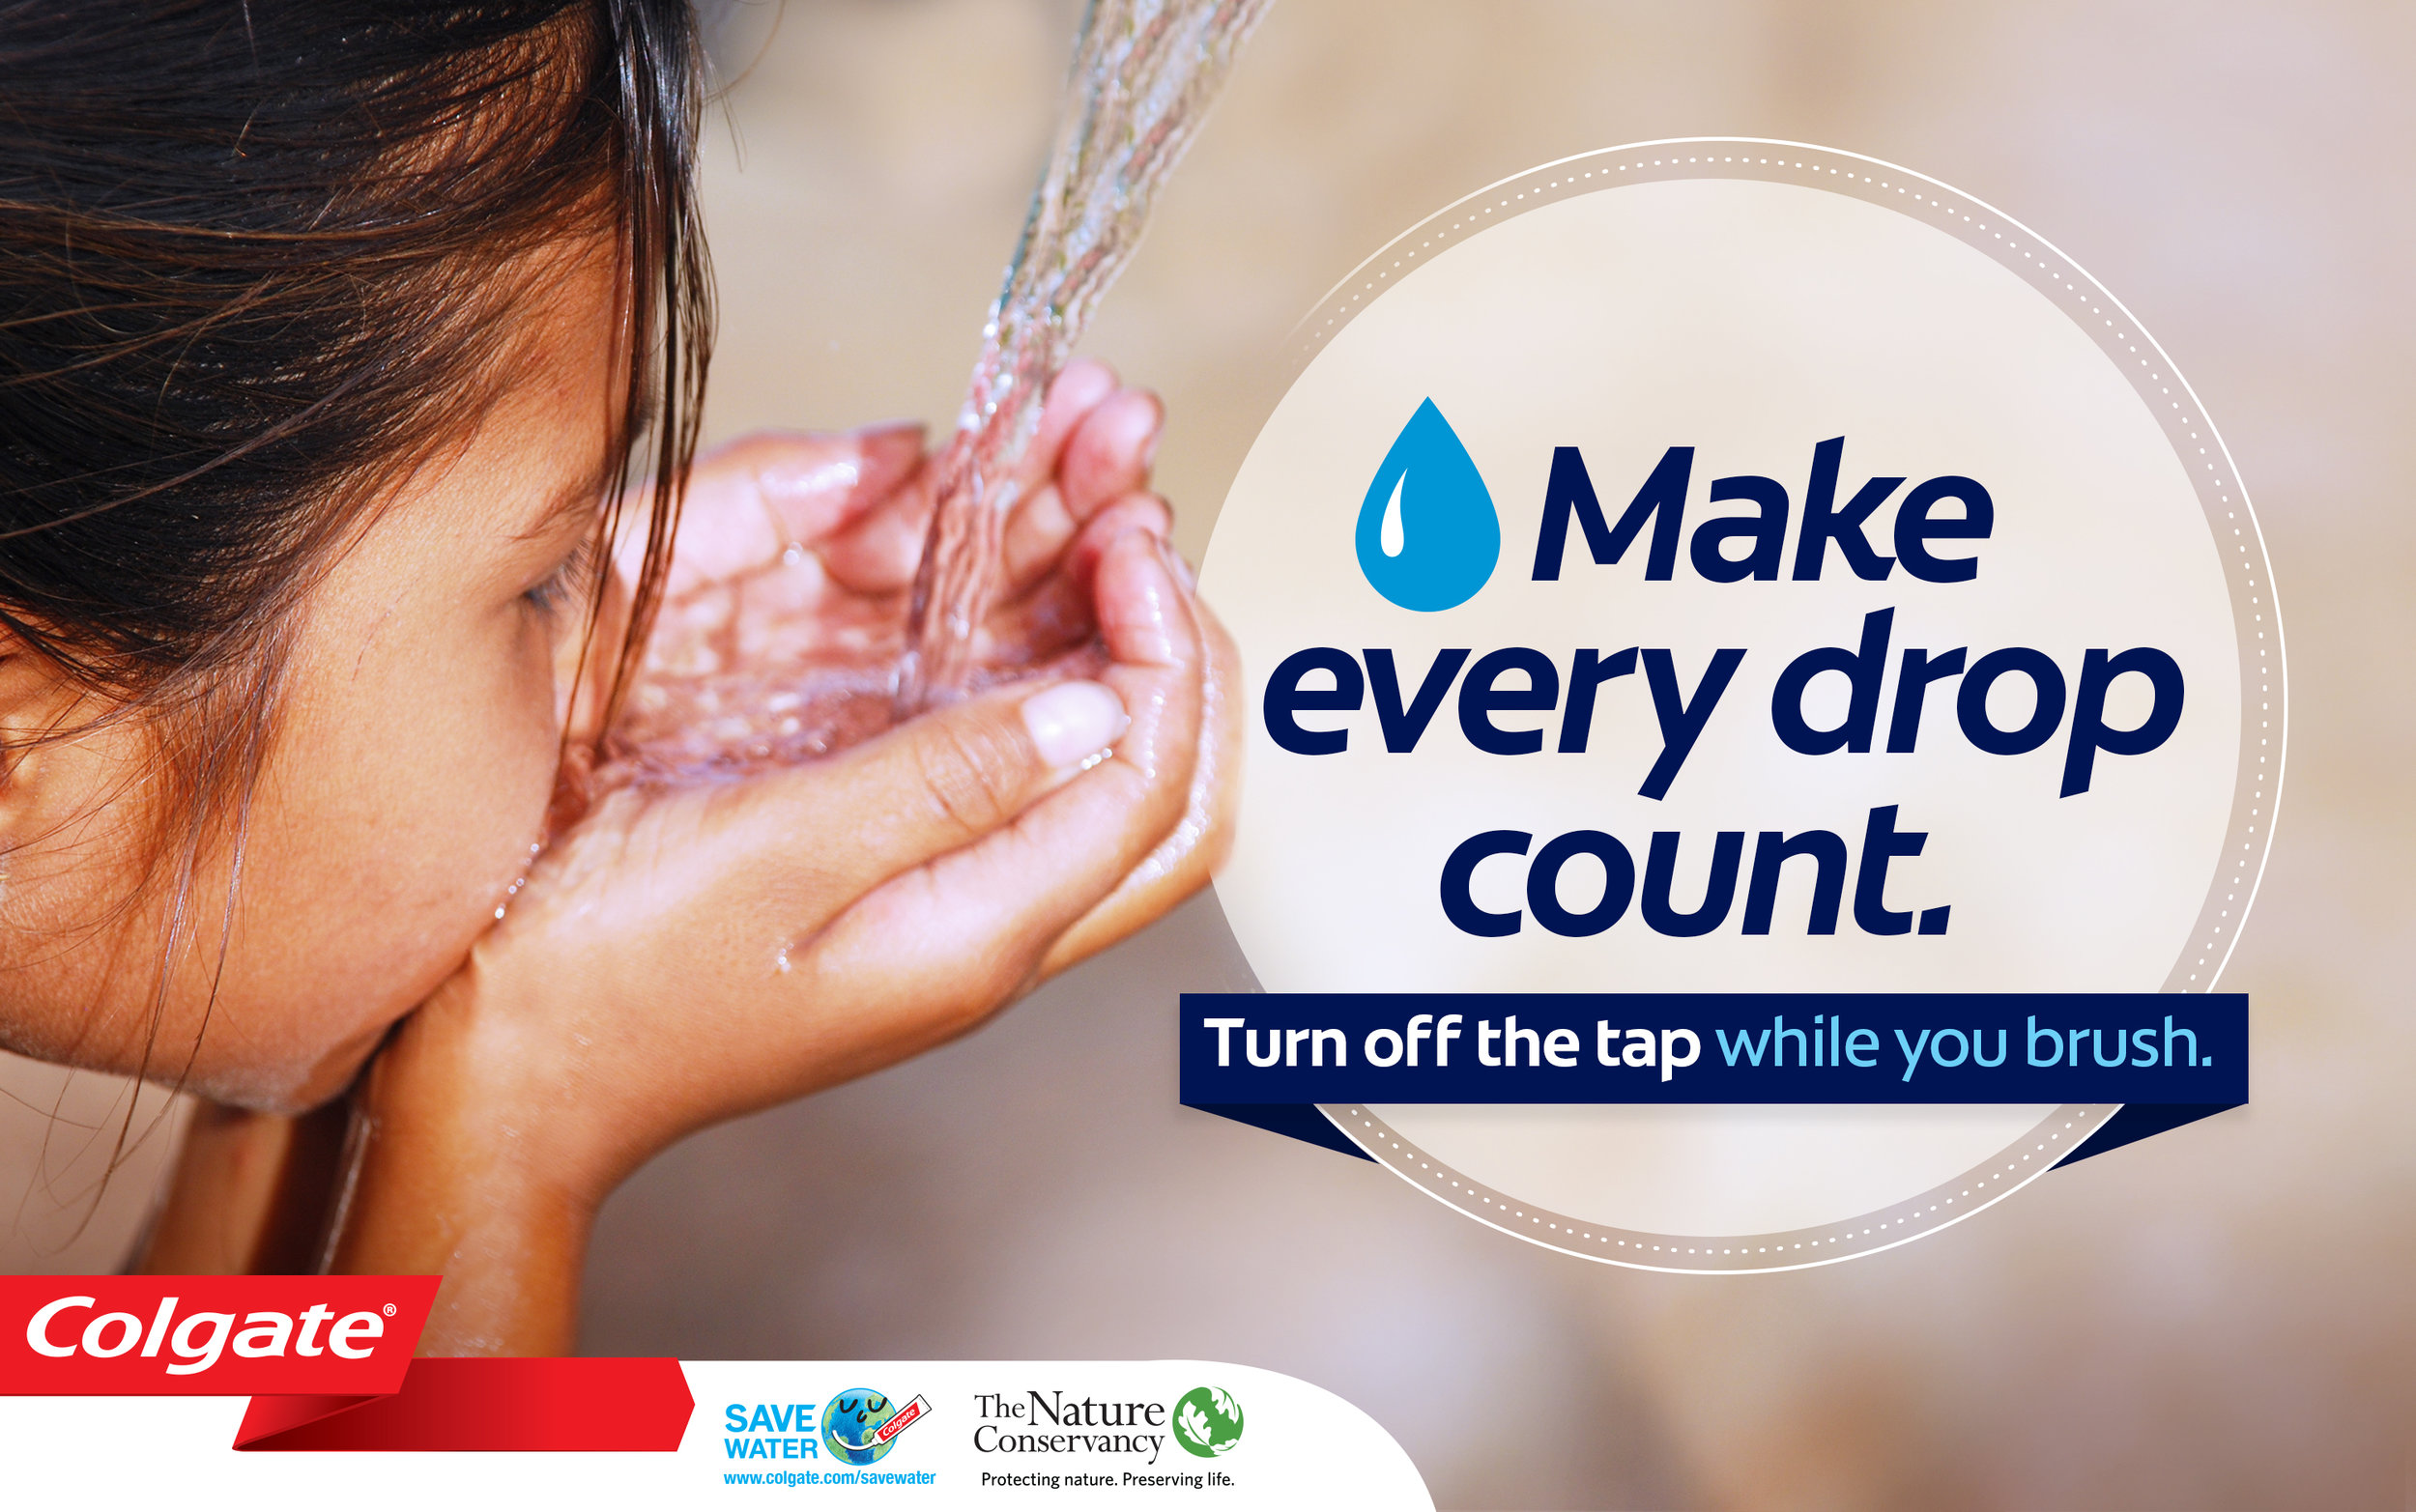 Final Key Visual for the Global Save Water campaign